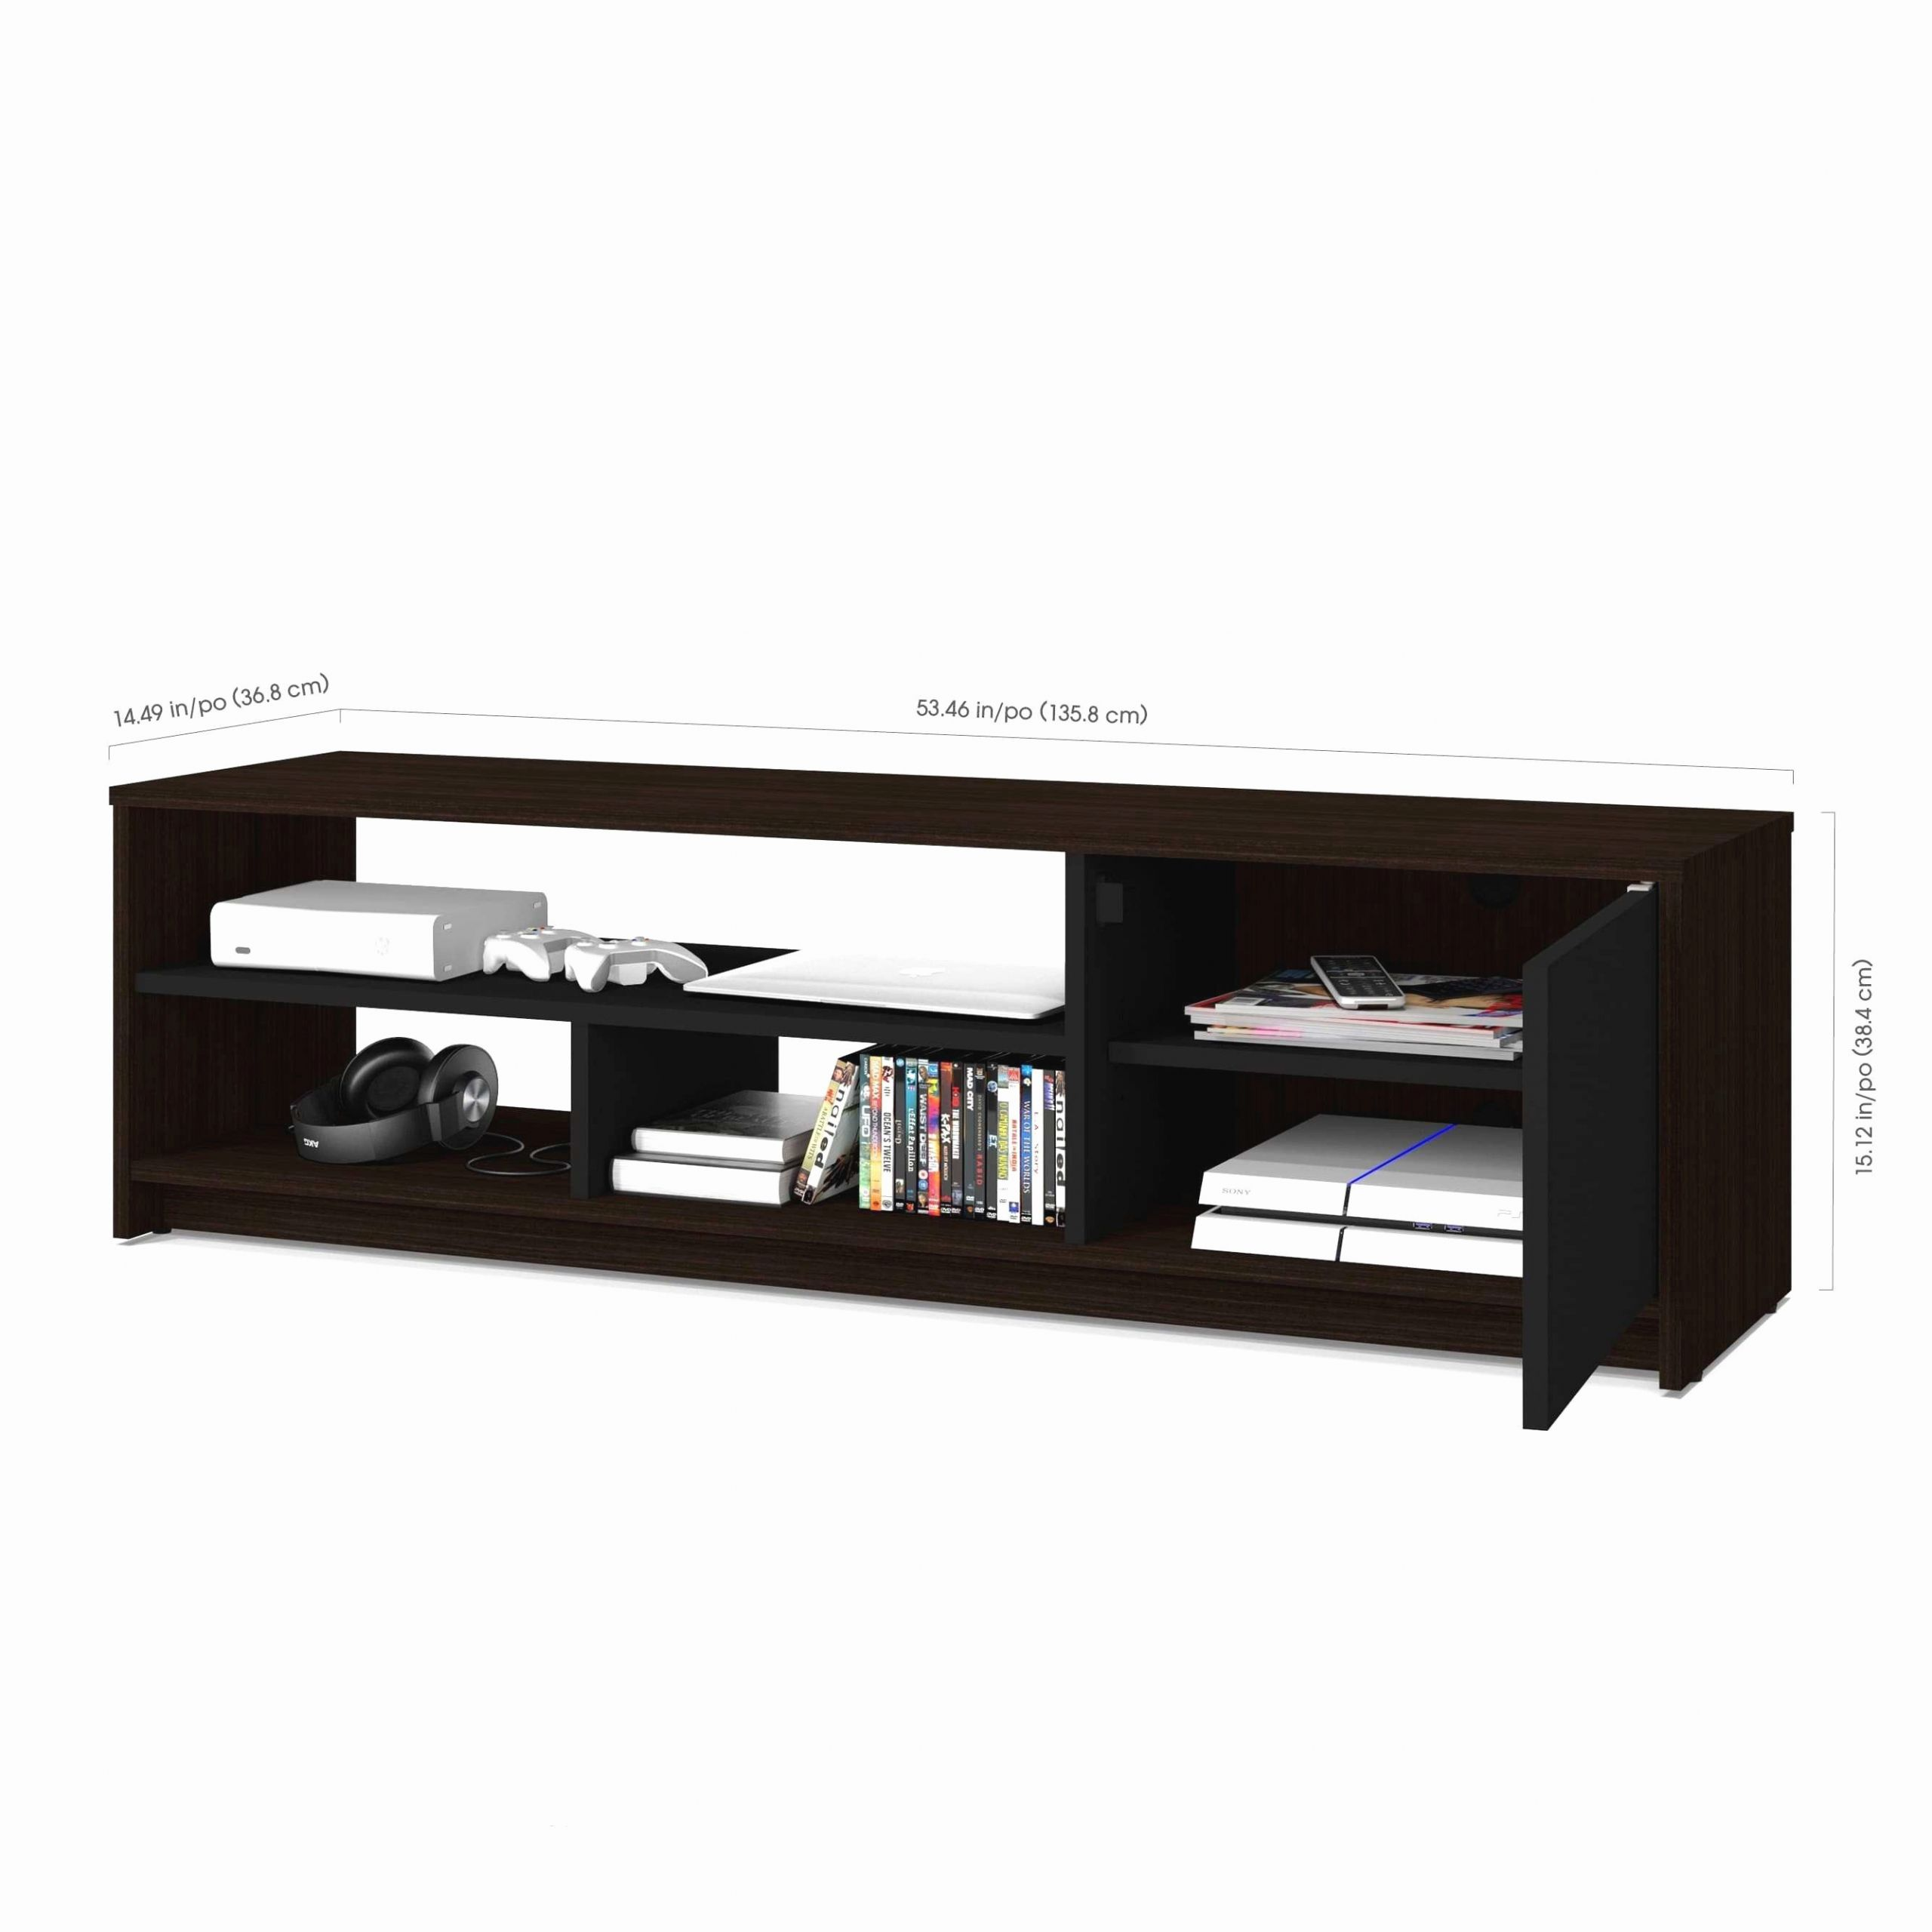 table ronde extensible 12 personnes source dinspiration table ronde extensible 10 personnes nouveau console extensible 12 of table ronde extensible 12 personnes